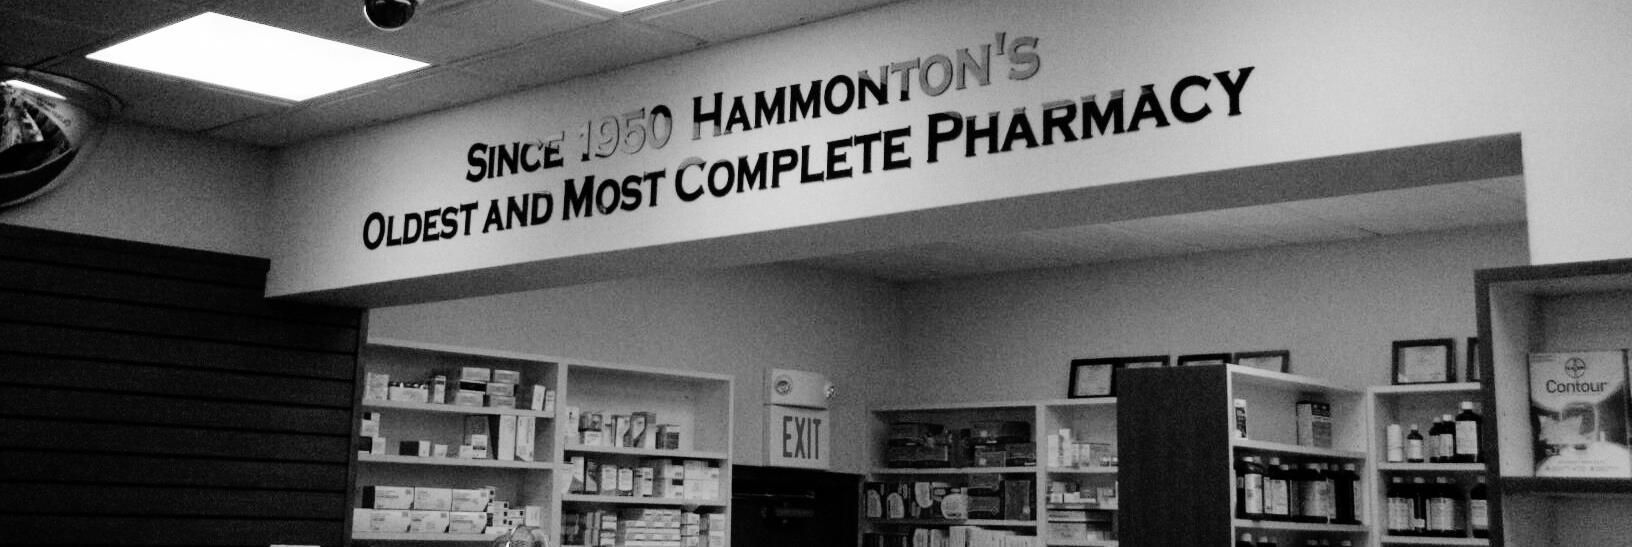 Hammonton's Oldest And Most Complete Pharmacy